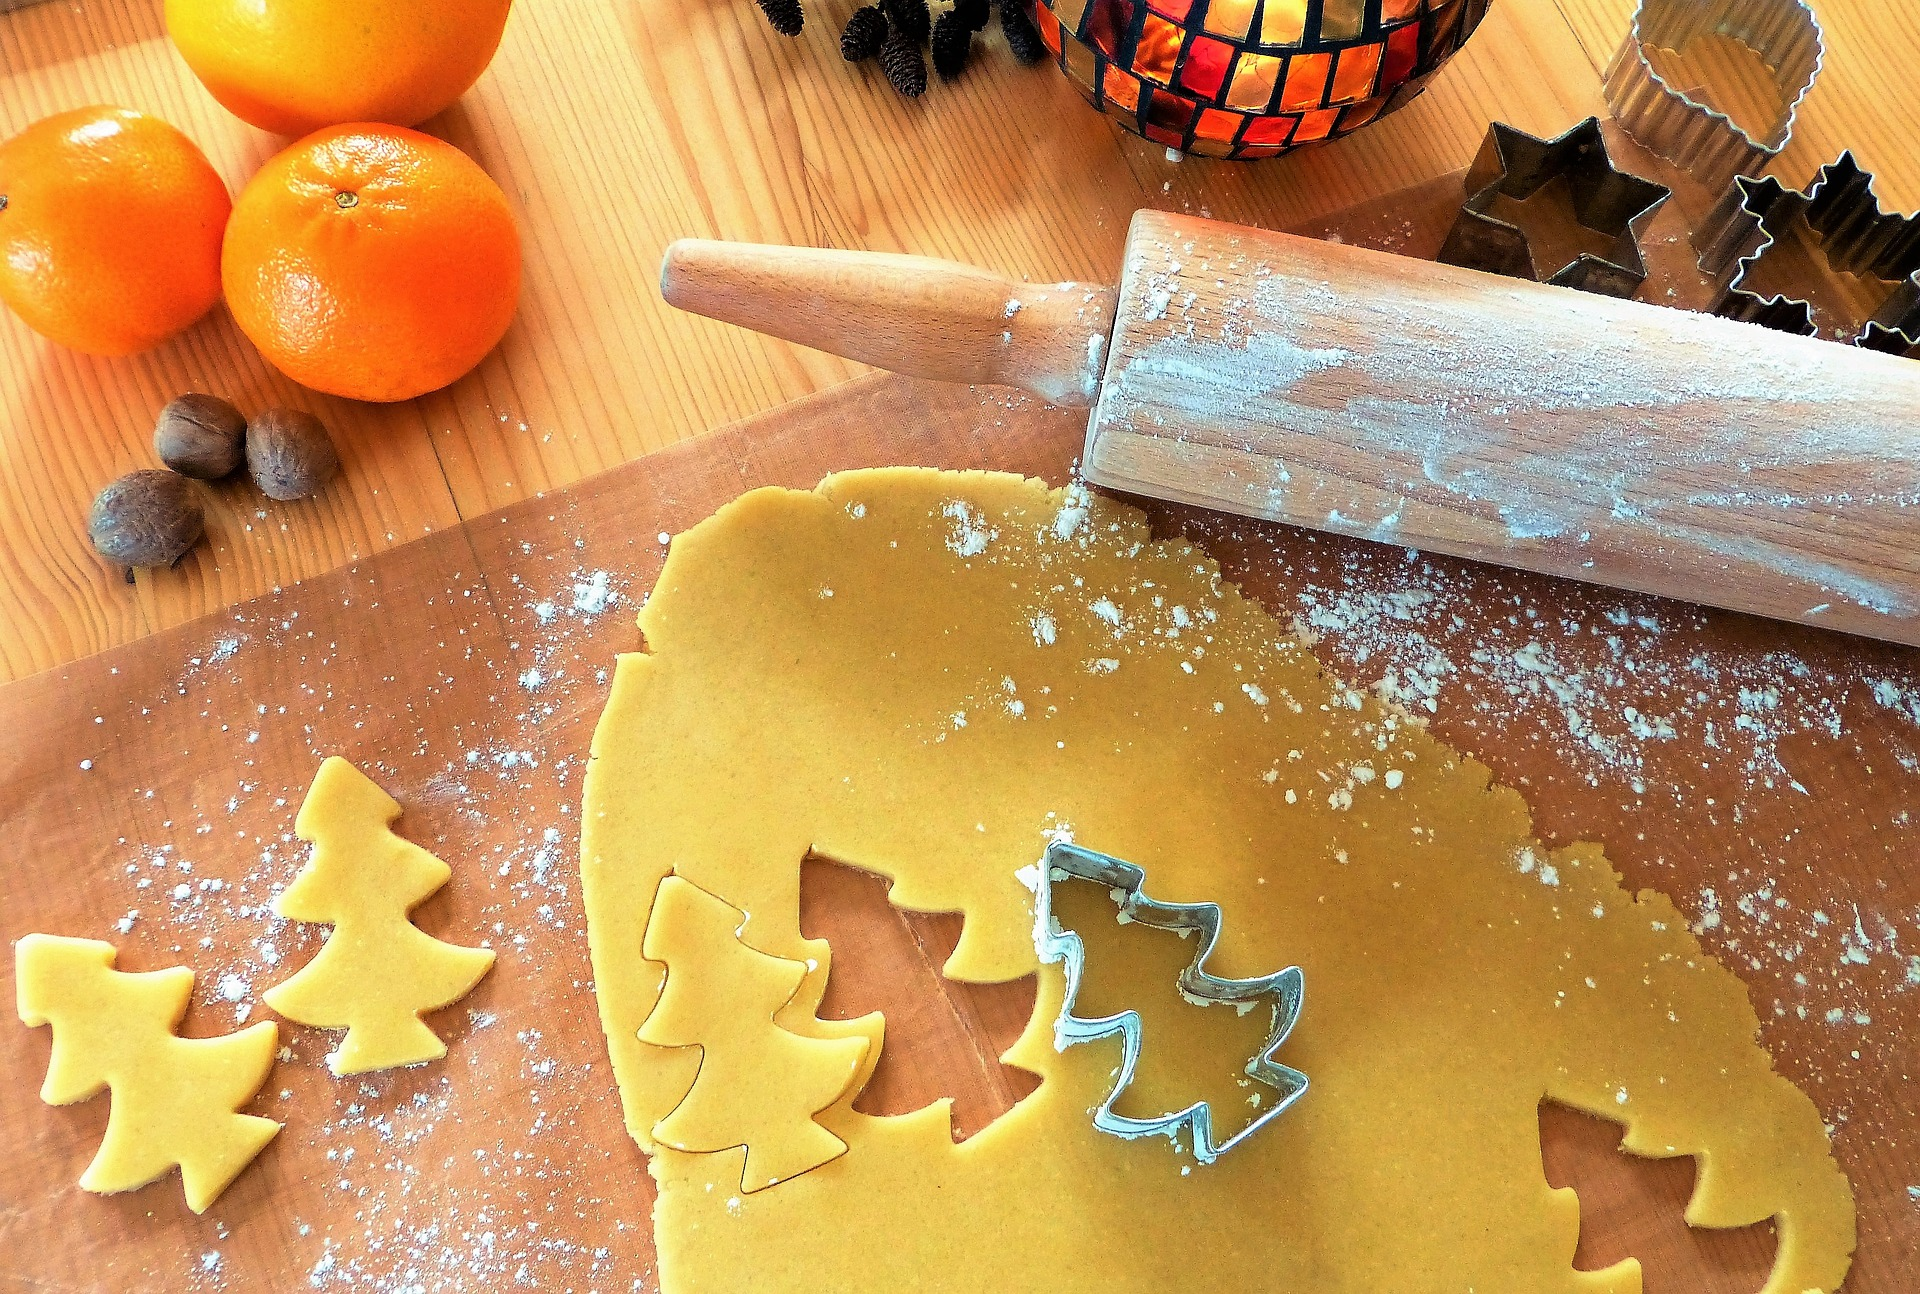 Baking, Cookie Cutters, Cooking Safety, Holidays